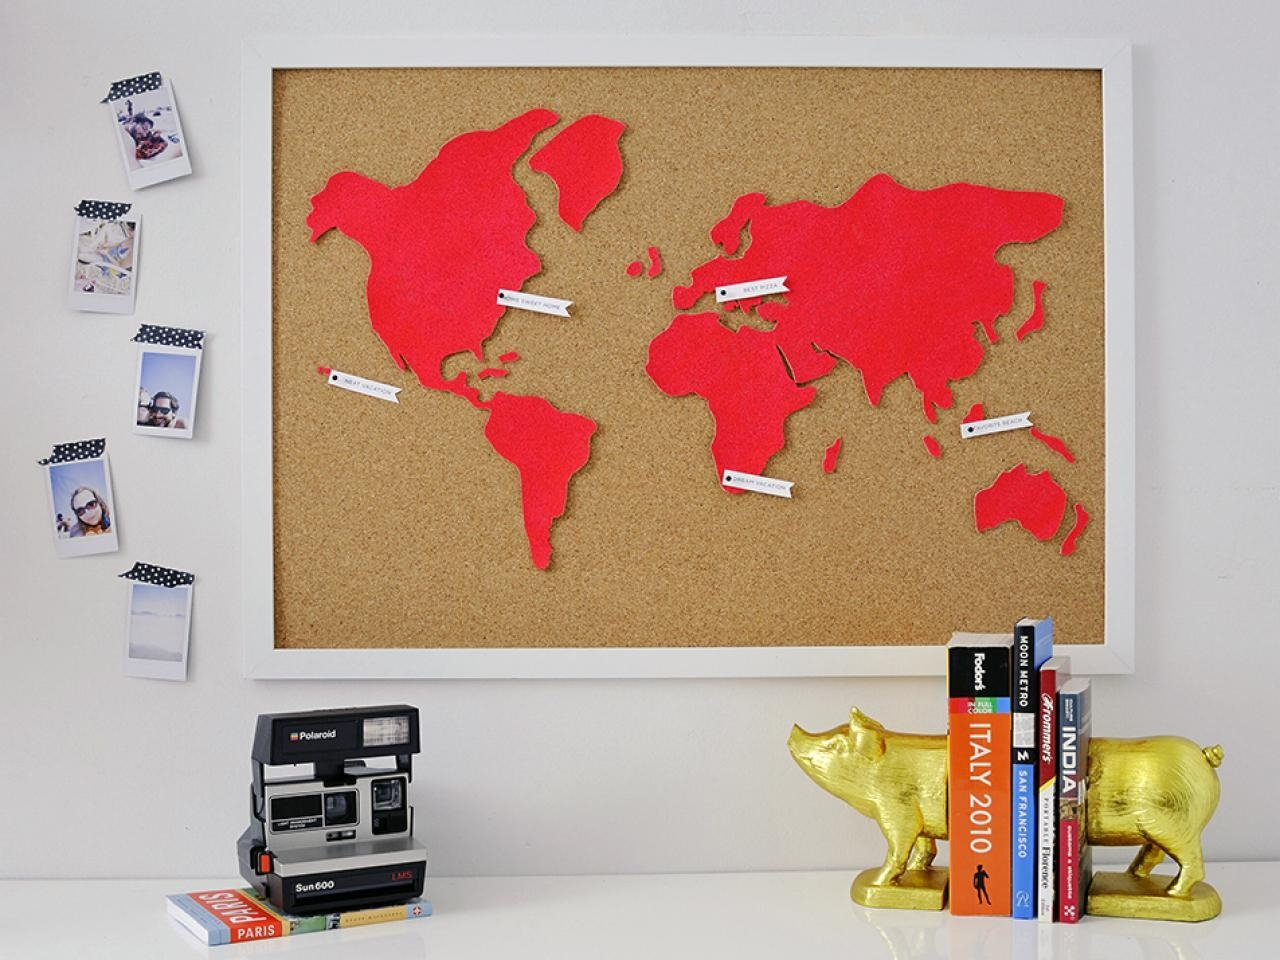 Diy Wall Art: Make A Custom Corkboard World Map | Hgtv Pertaining To Diy Origami Wall Art (View 18 of 20)